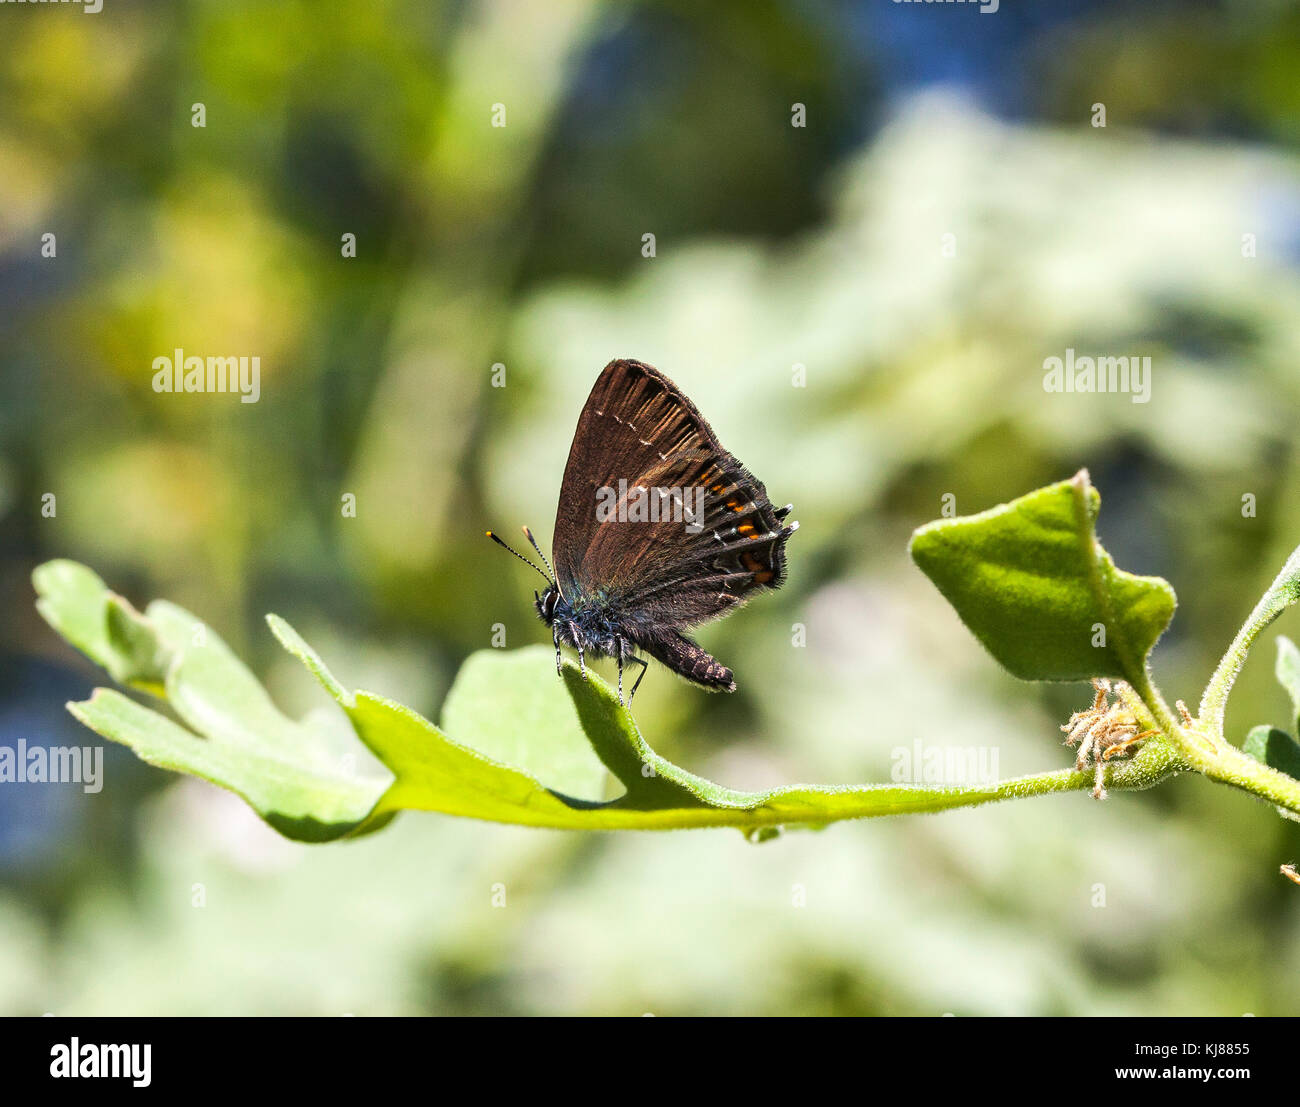 Ilex Hairstreak butterfly Satyrium ilicis basking in the sun on the leaf of the Oak tree at Riaza in central Spain - Stock Image